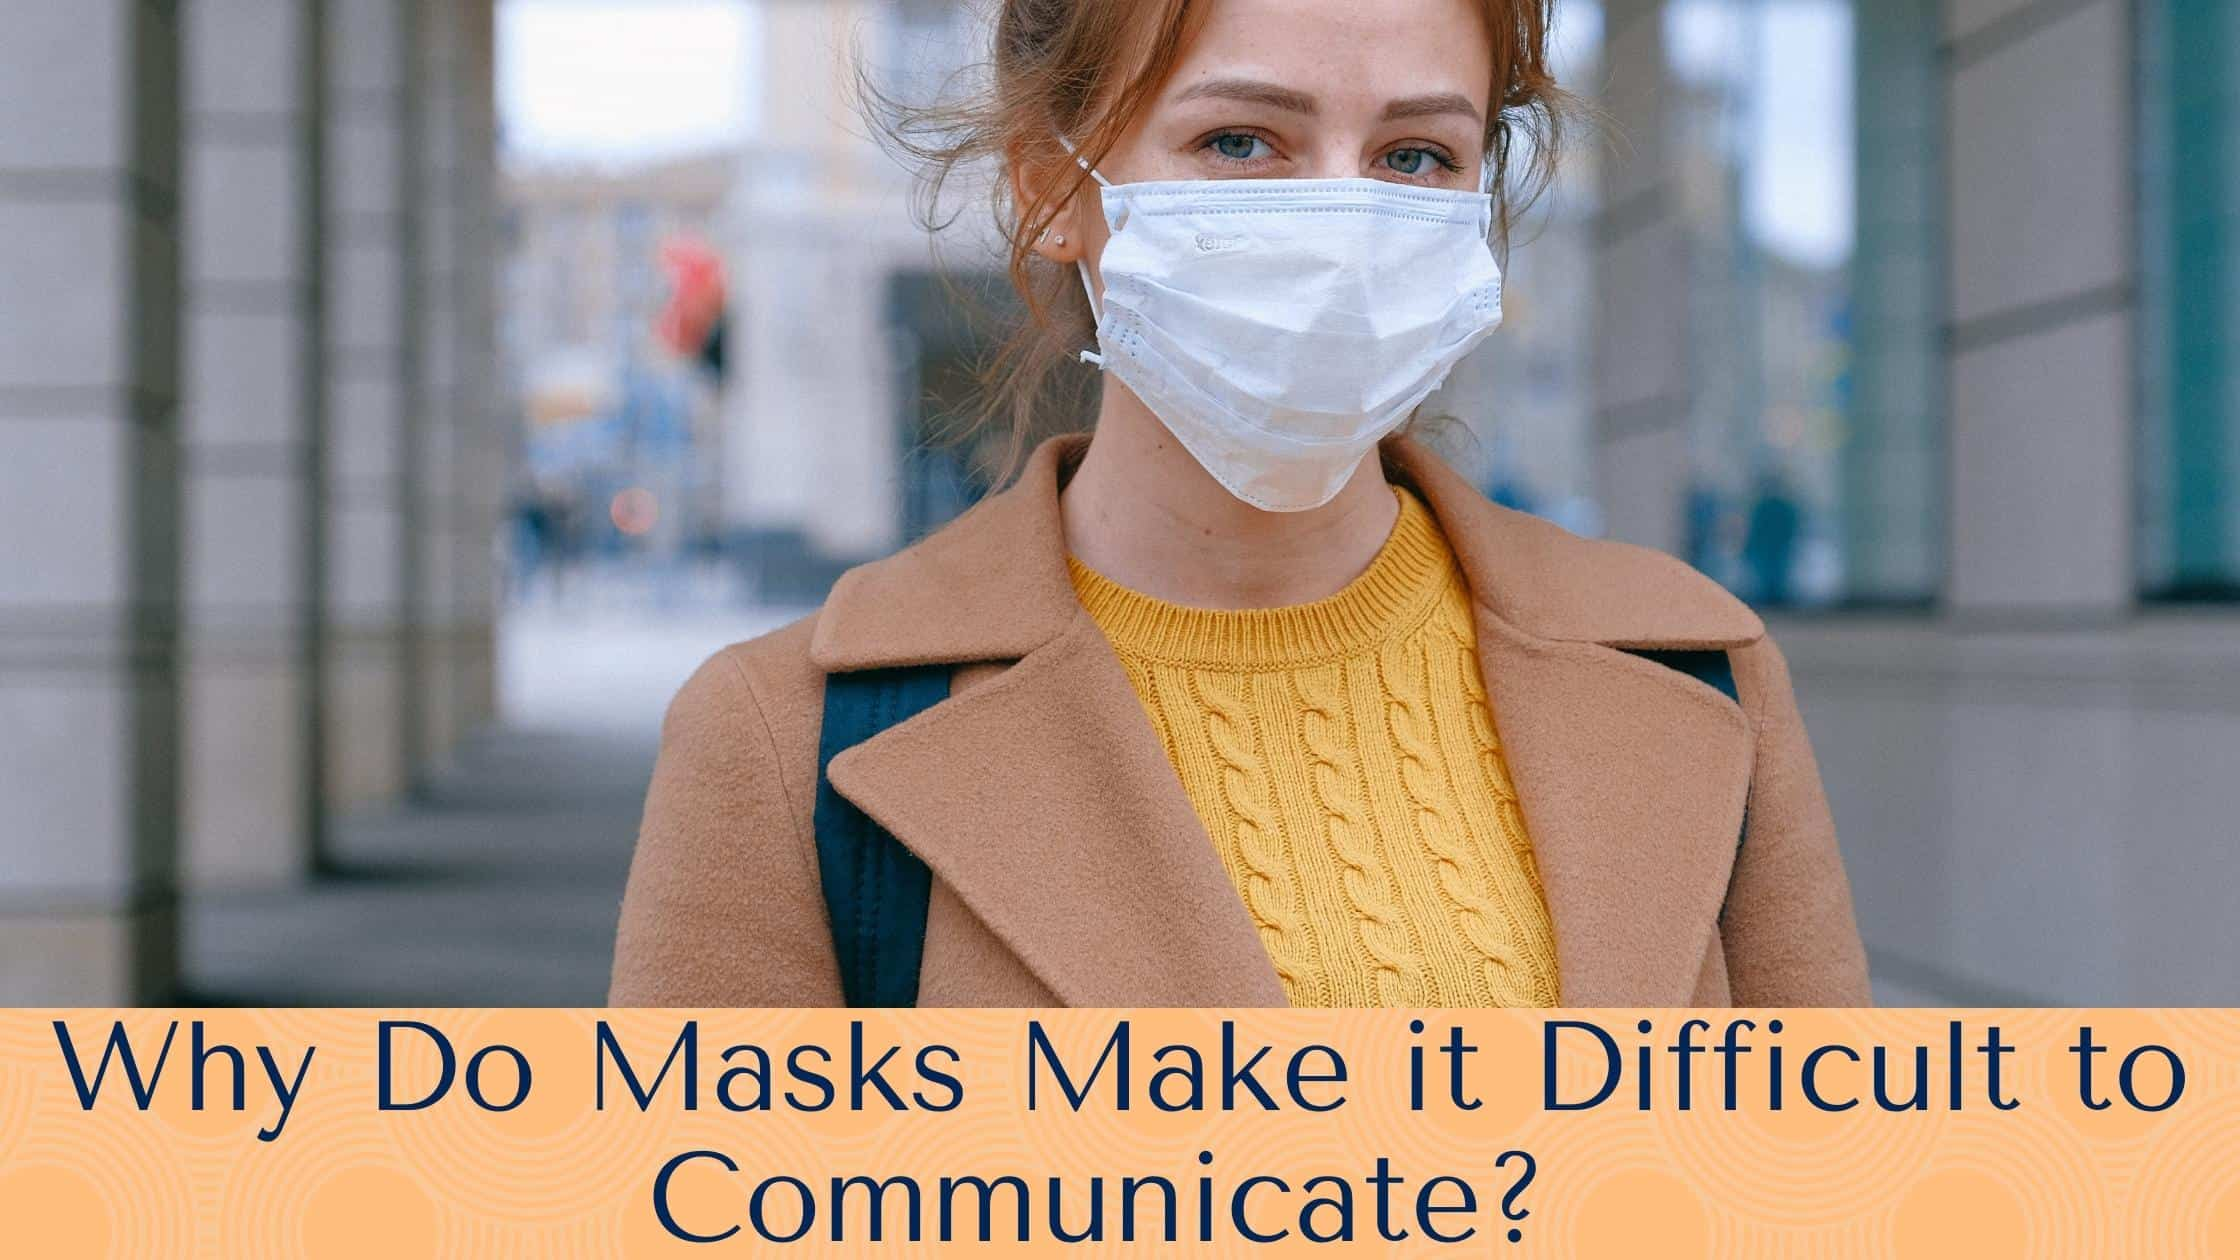 Why Do Masks Make it Difficult to Communicate?